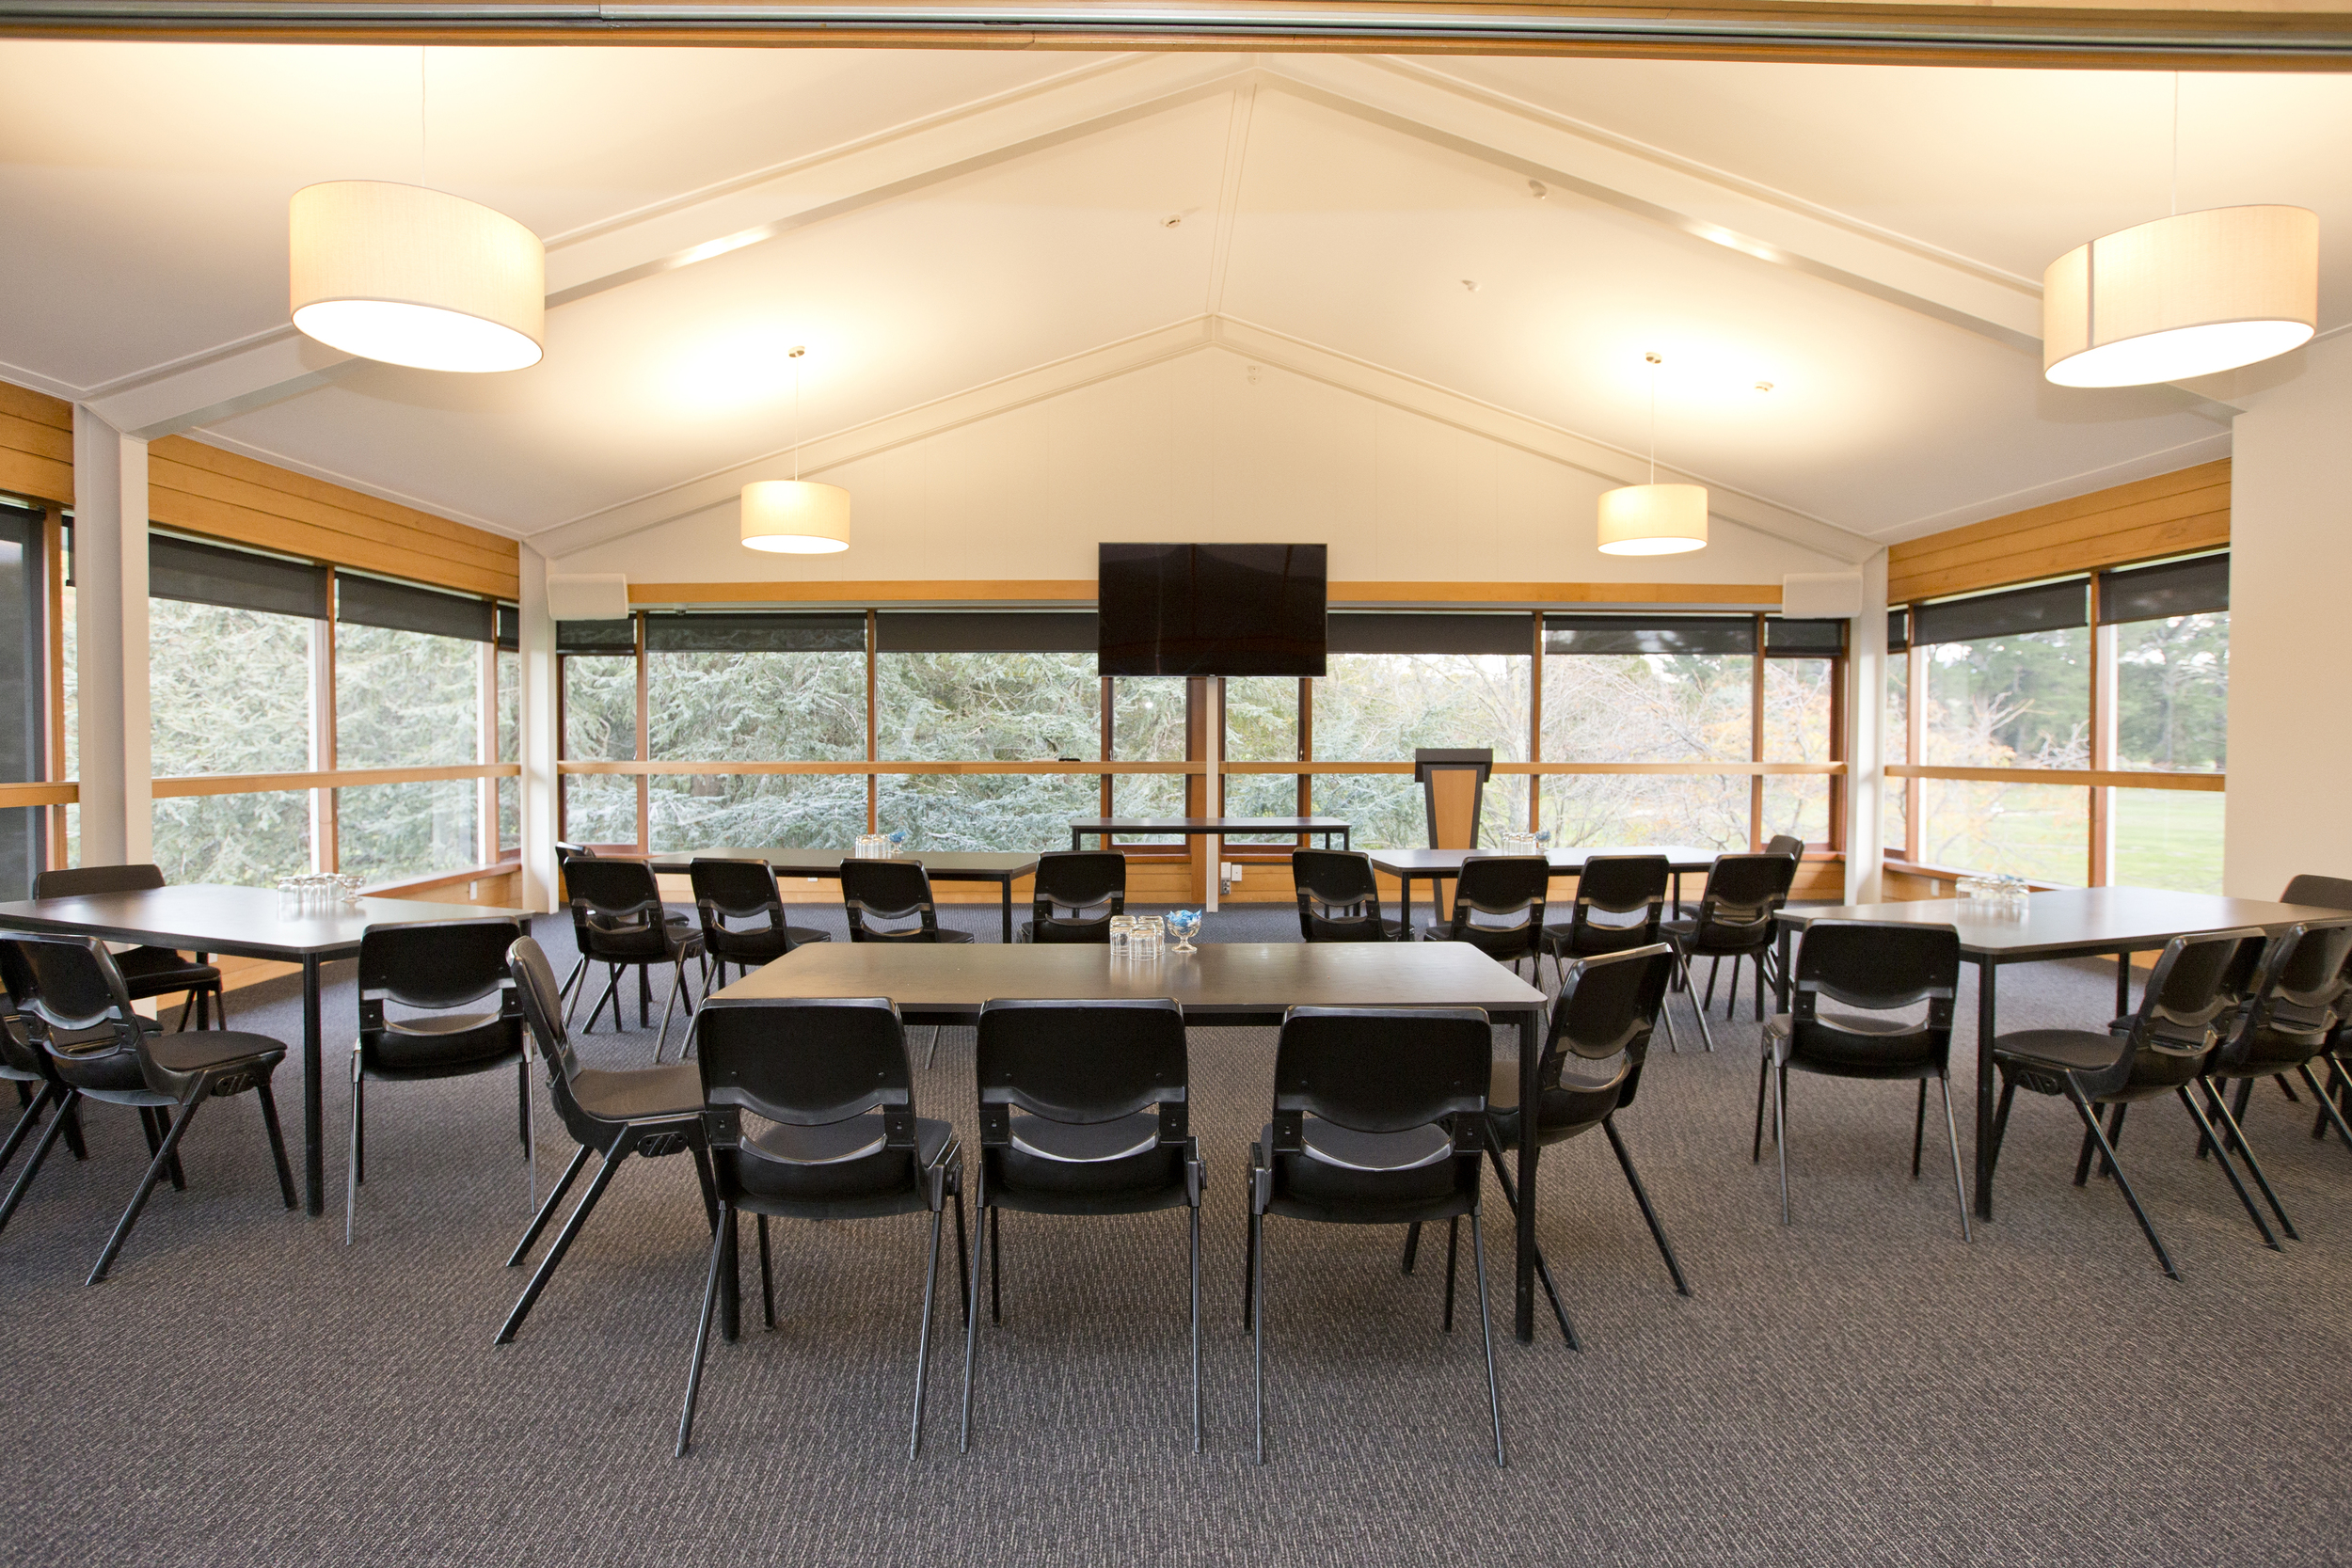 ANZ Lounge - Classroom style